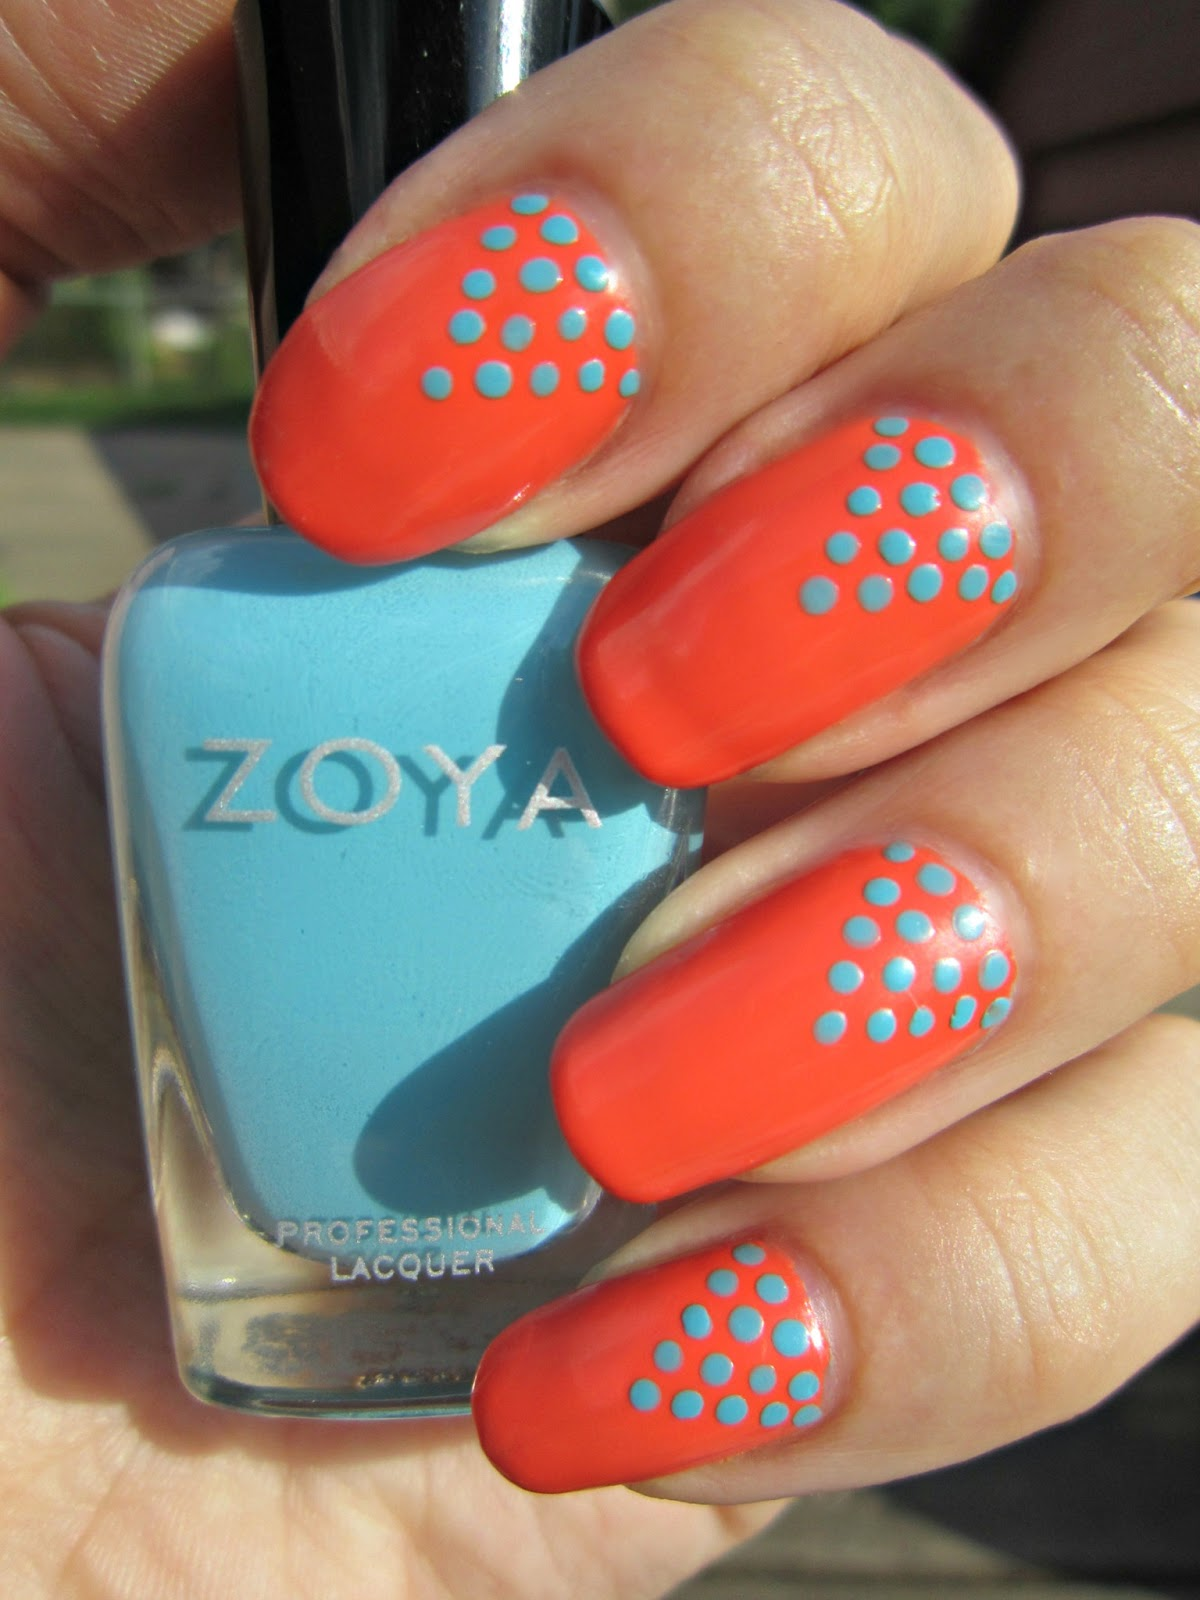 Nail Art Dotting Tool Pictures to Pin on Pinterest - PinsDaddy